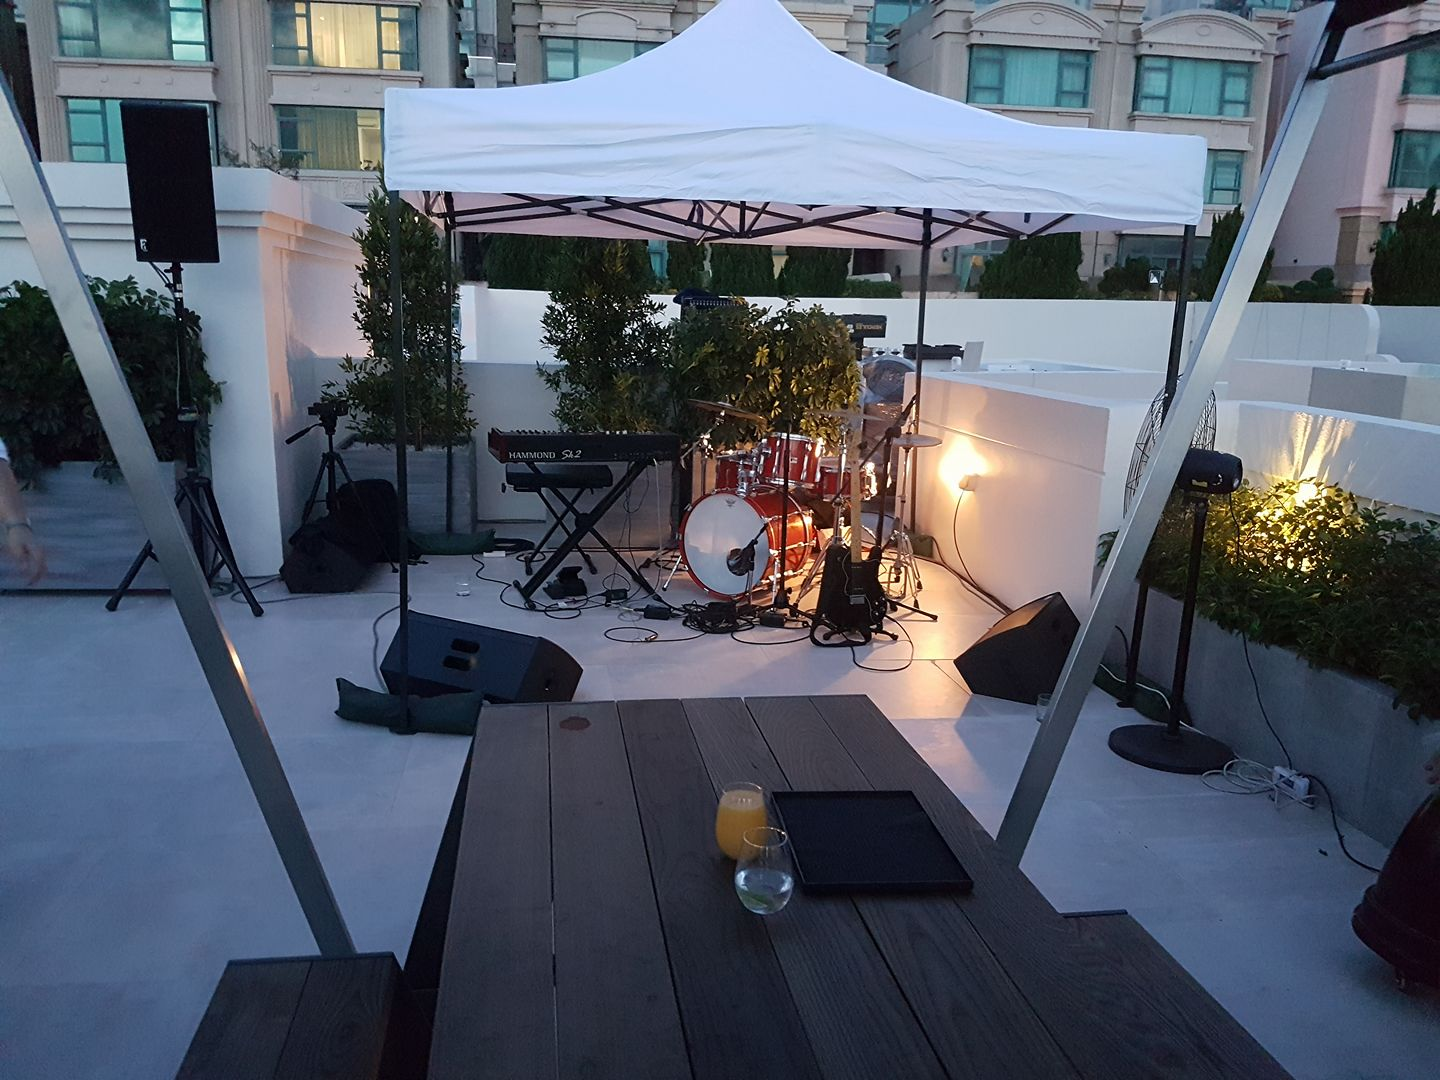 Rooftop Party in Client's Home! (2017)